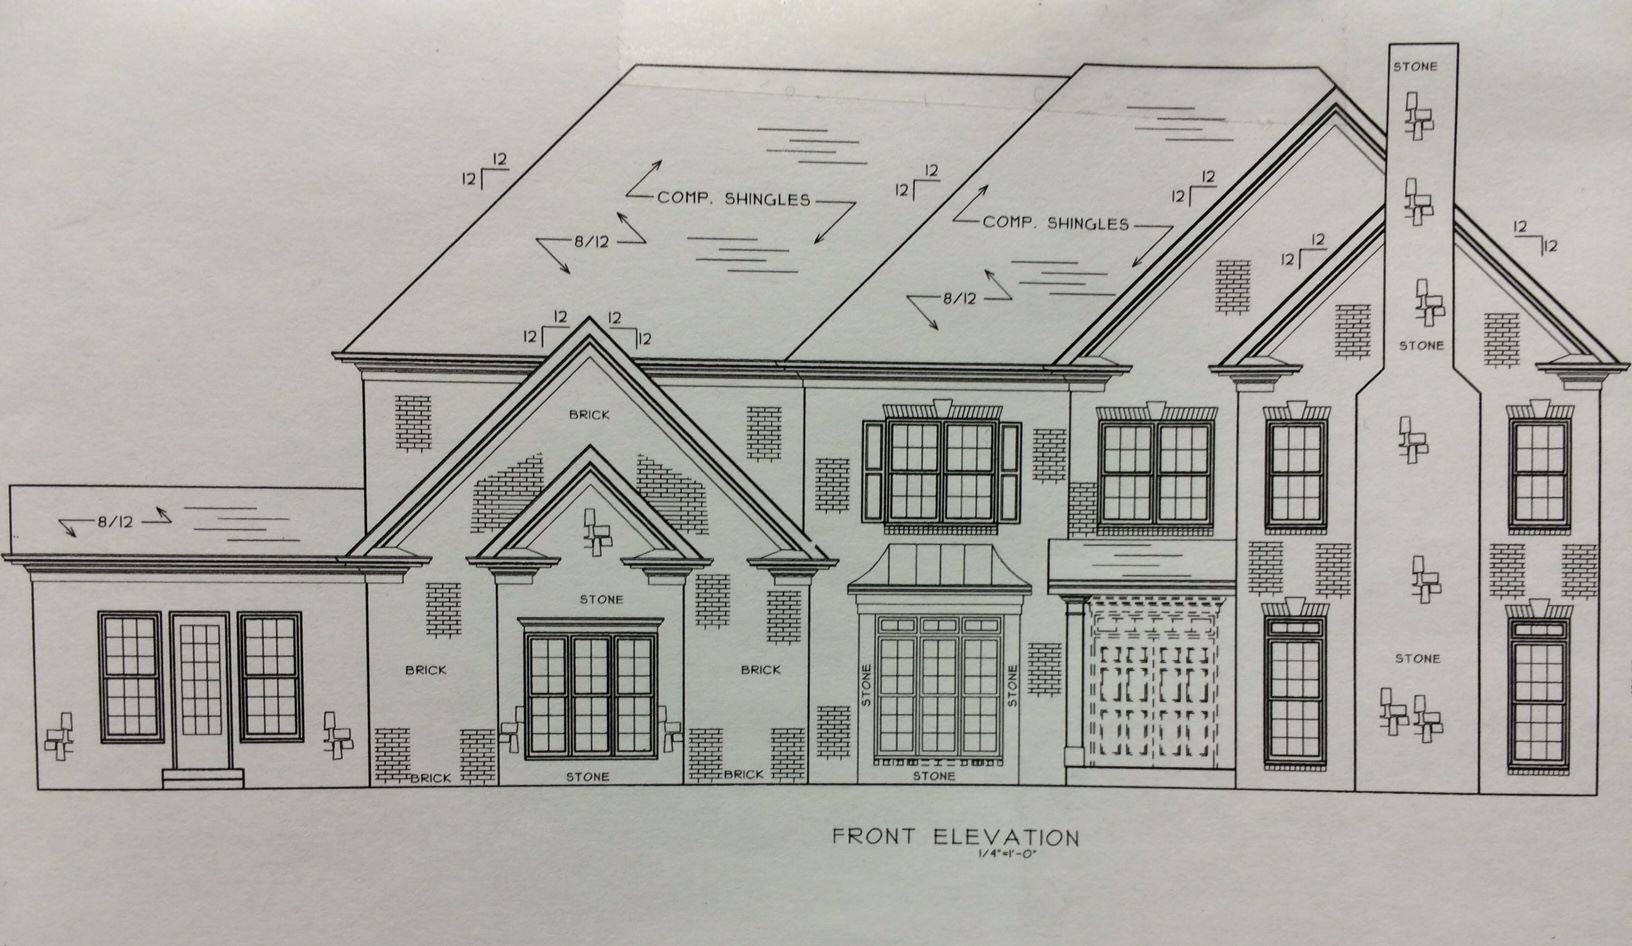 Property For Sale at Upcoming Custom Build in Chastain